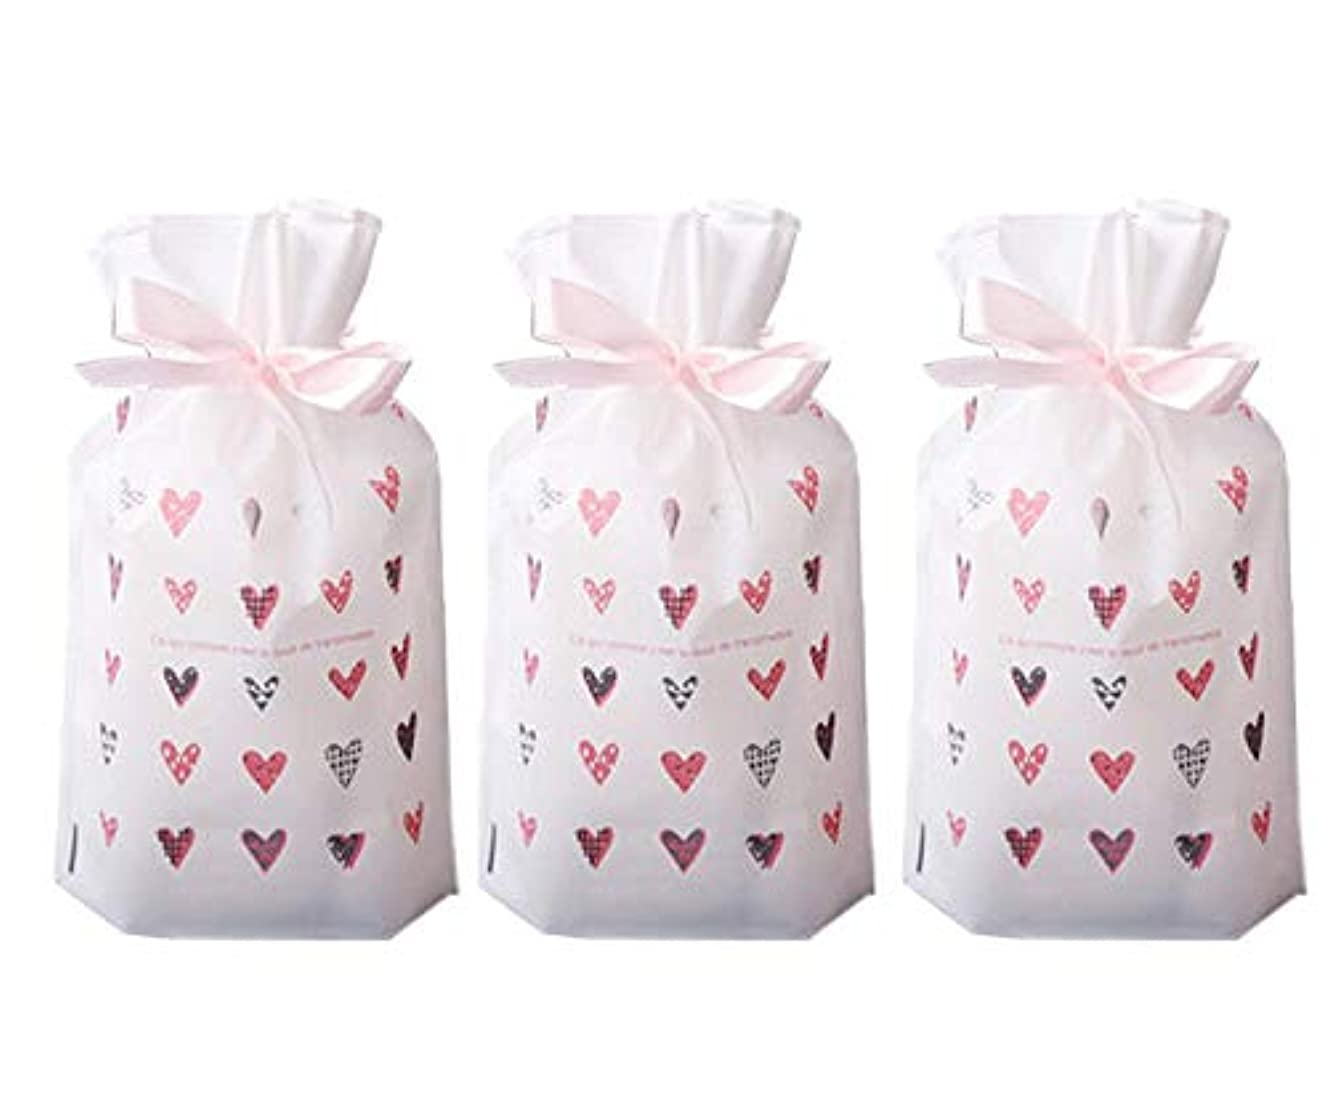 Funcoo 30 PCs Party Favor Bags, Plastic Drawstring Gift Treat Bag Pouch, Candy Cookie Bag for Wedding Party Bridal Baby Shower Birthday Engagement Christmas Holiday Favor